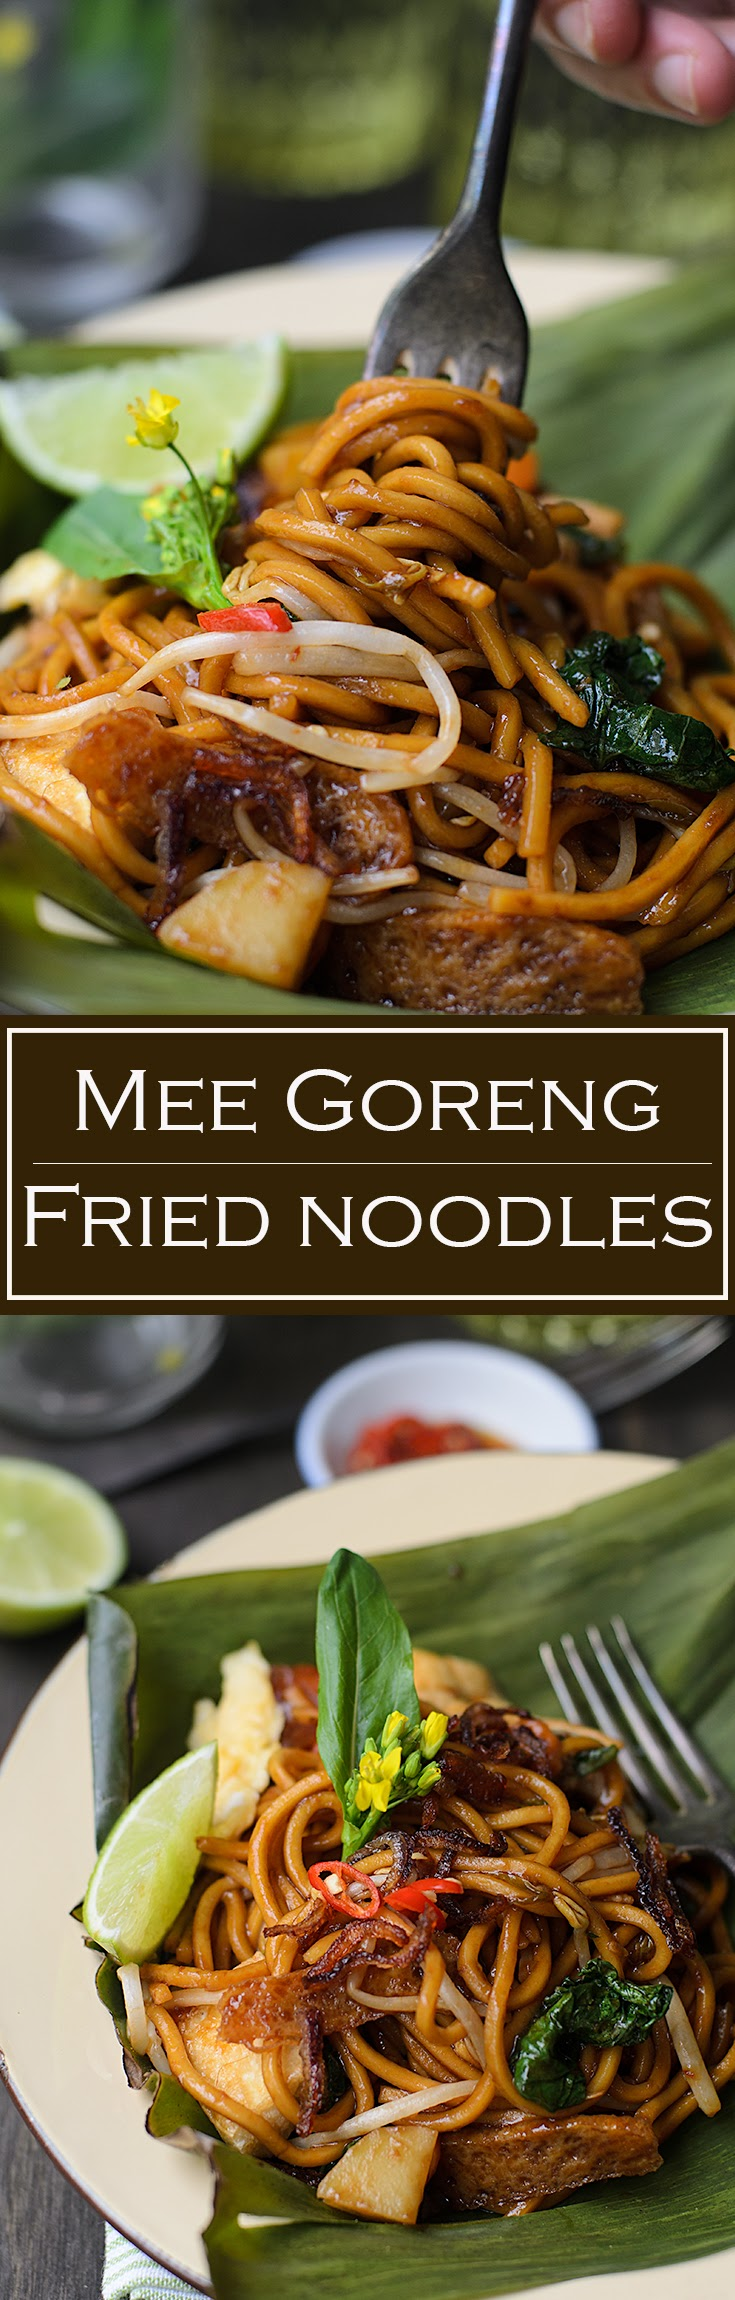 Malaysian mee goreng recipe.  Mee goreng (fried noodles) is one of many Malaysians' favourite street food. Mee goreng is easy to cook, delicious comfort food.